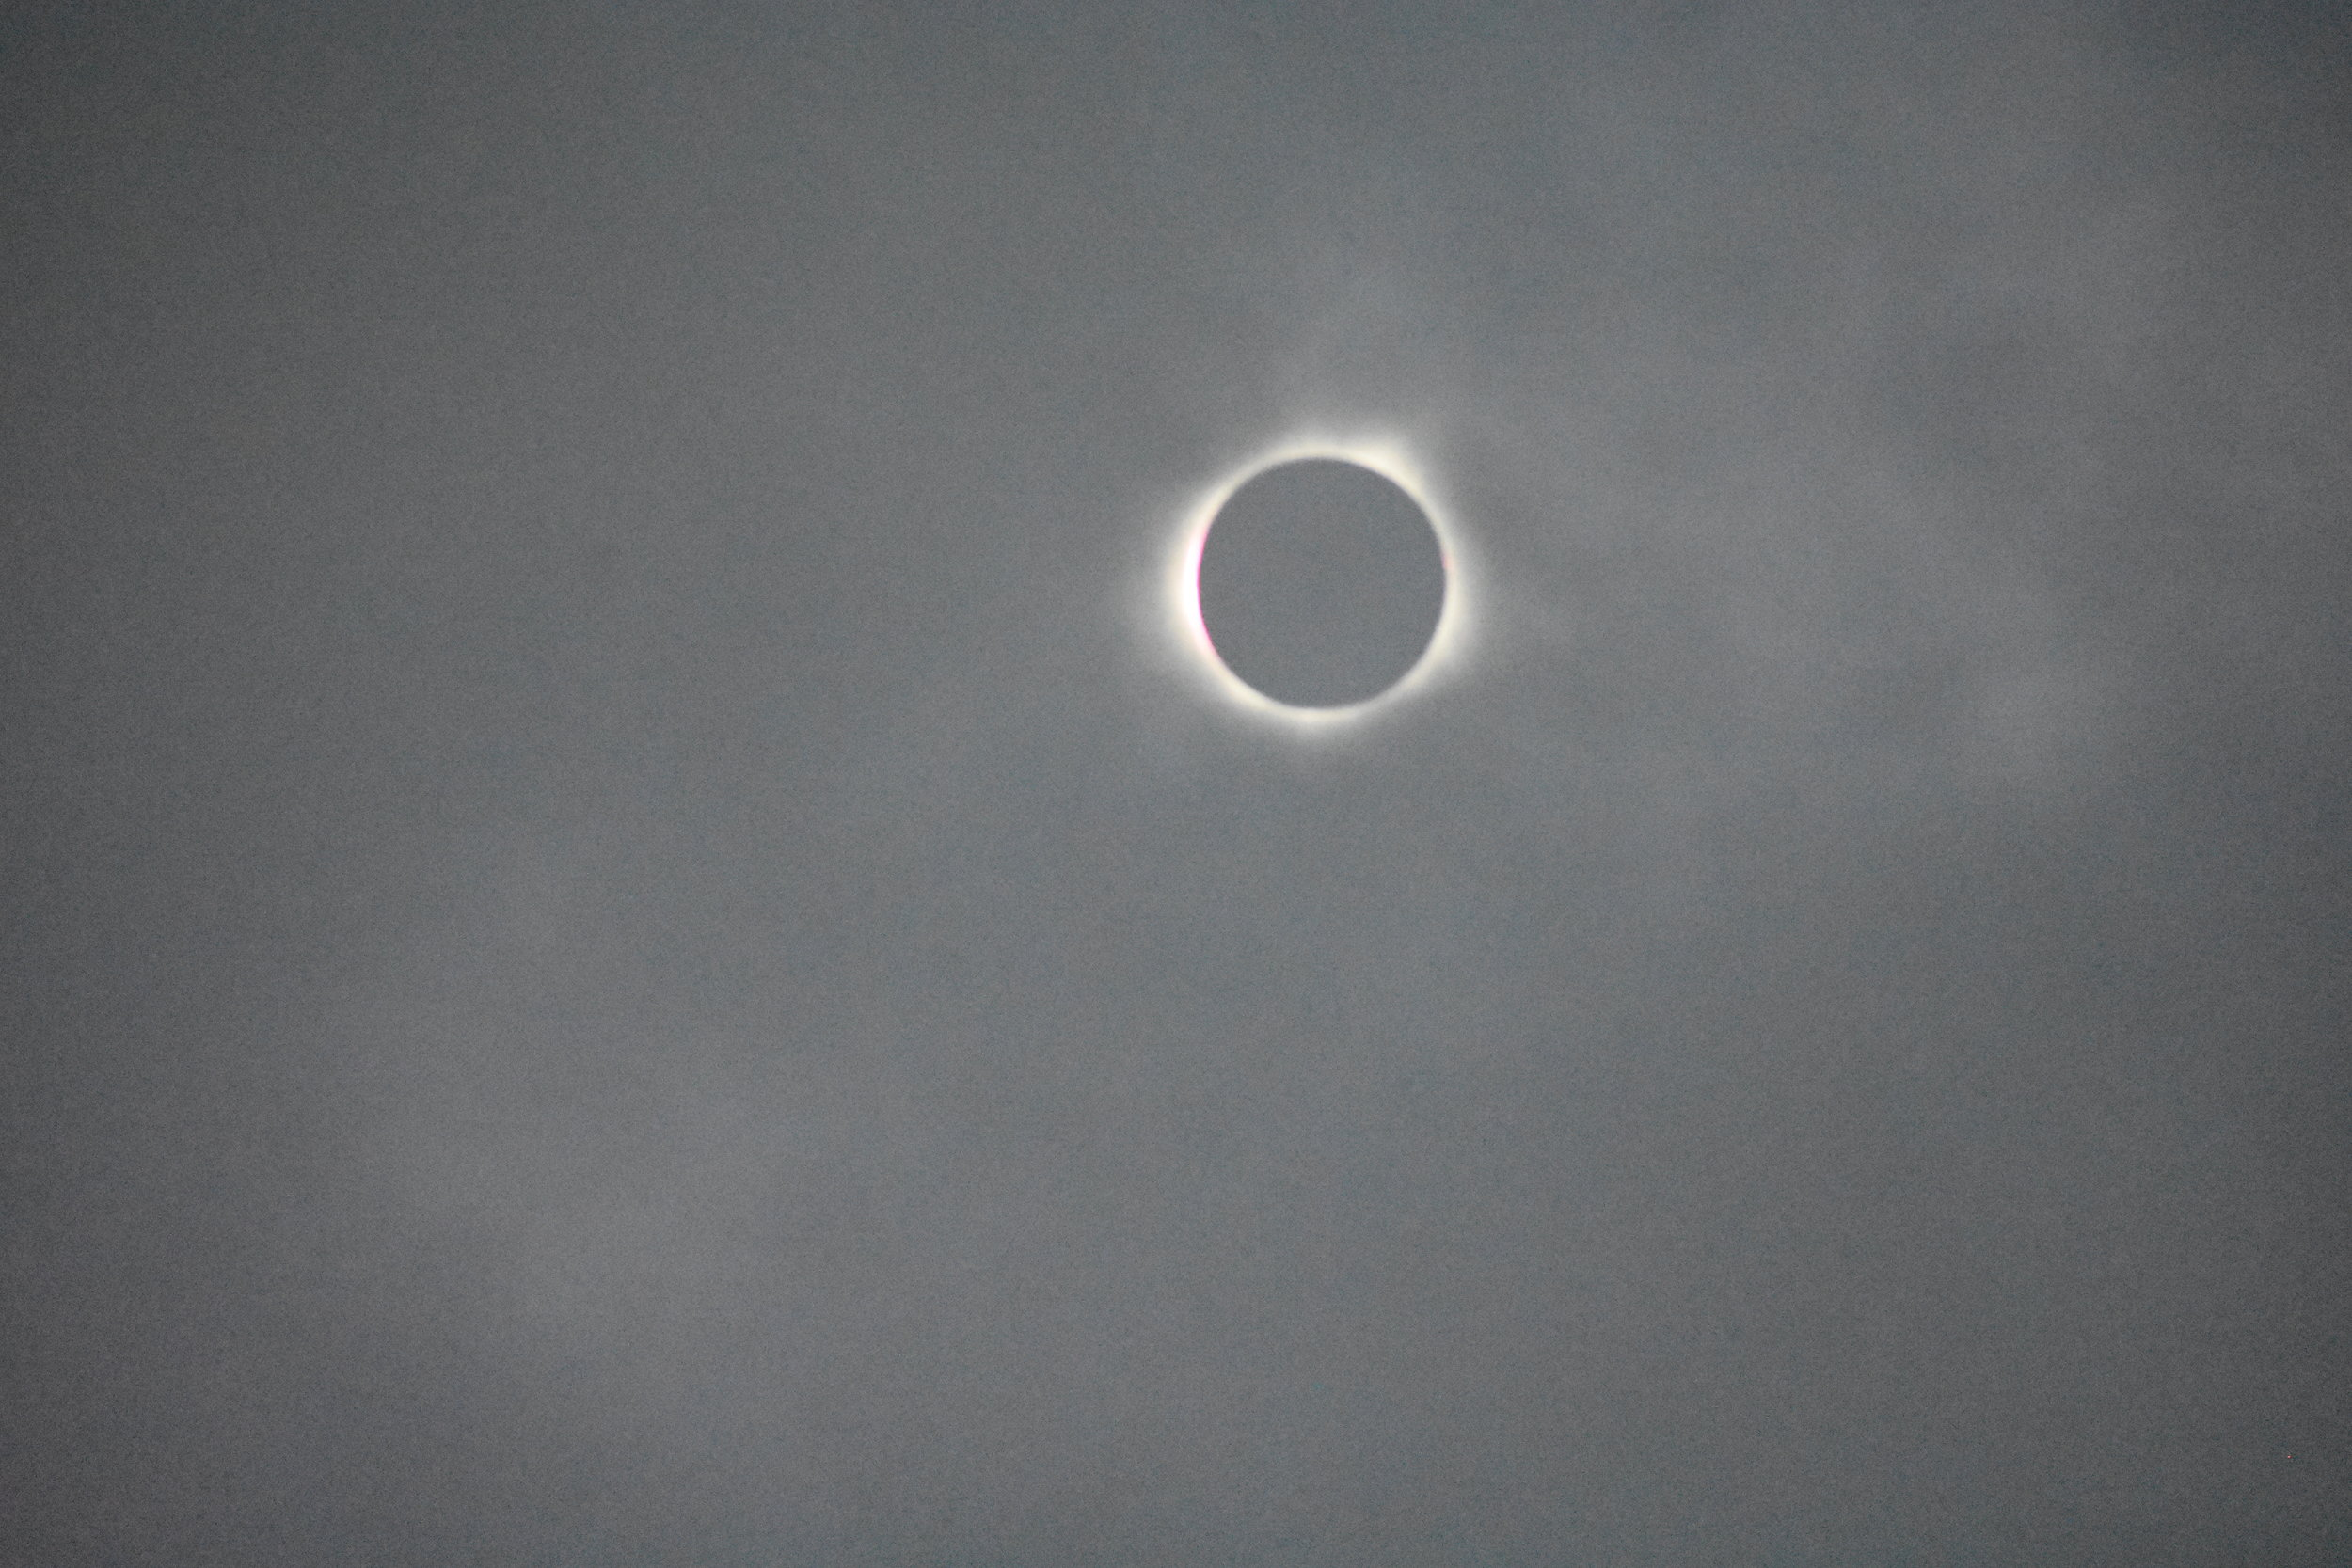 Diamond ring at the start of totality observed in Carbondale, IL. Shot with a Nikon D3400 camera. Image is gray and grainy due to the clouds.Credit: Nicki Button.